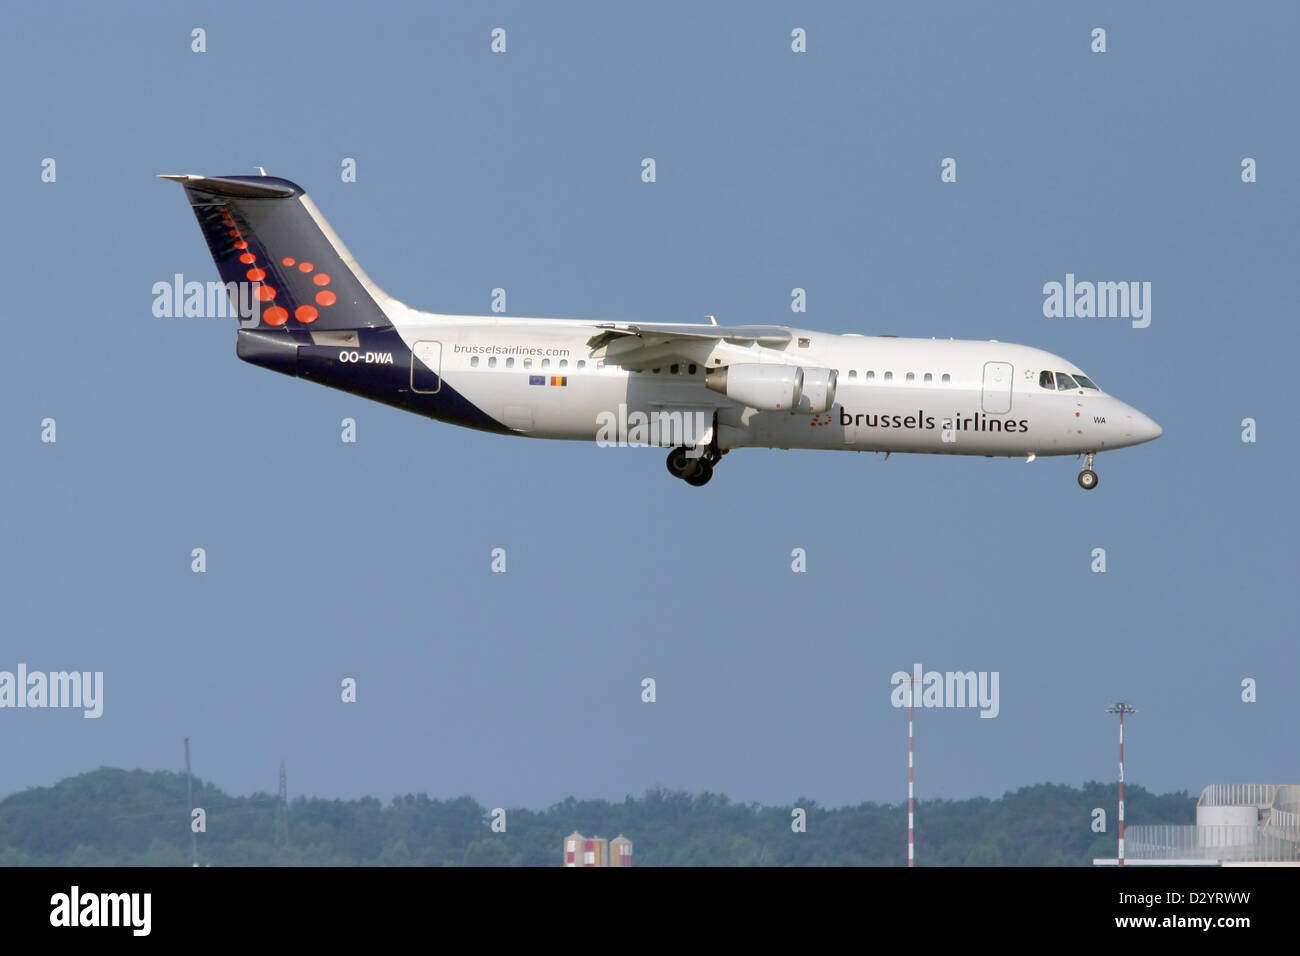 Brussels Airlines, Aerospace BAE 146-300 Avro RJ100 - Stock Image